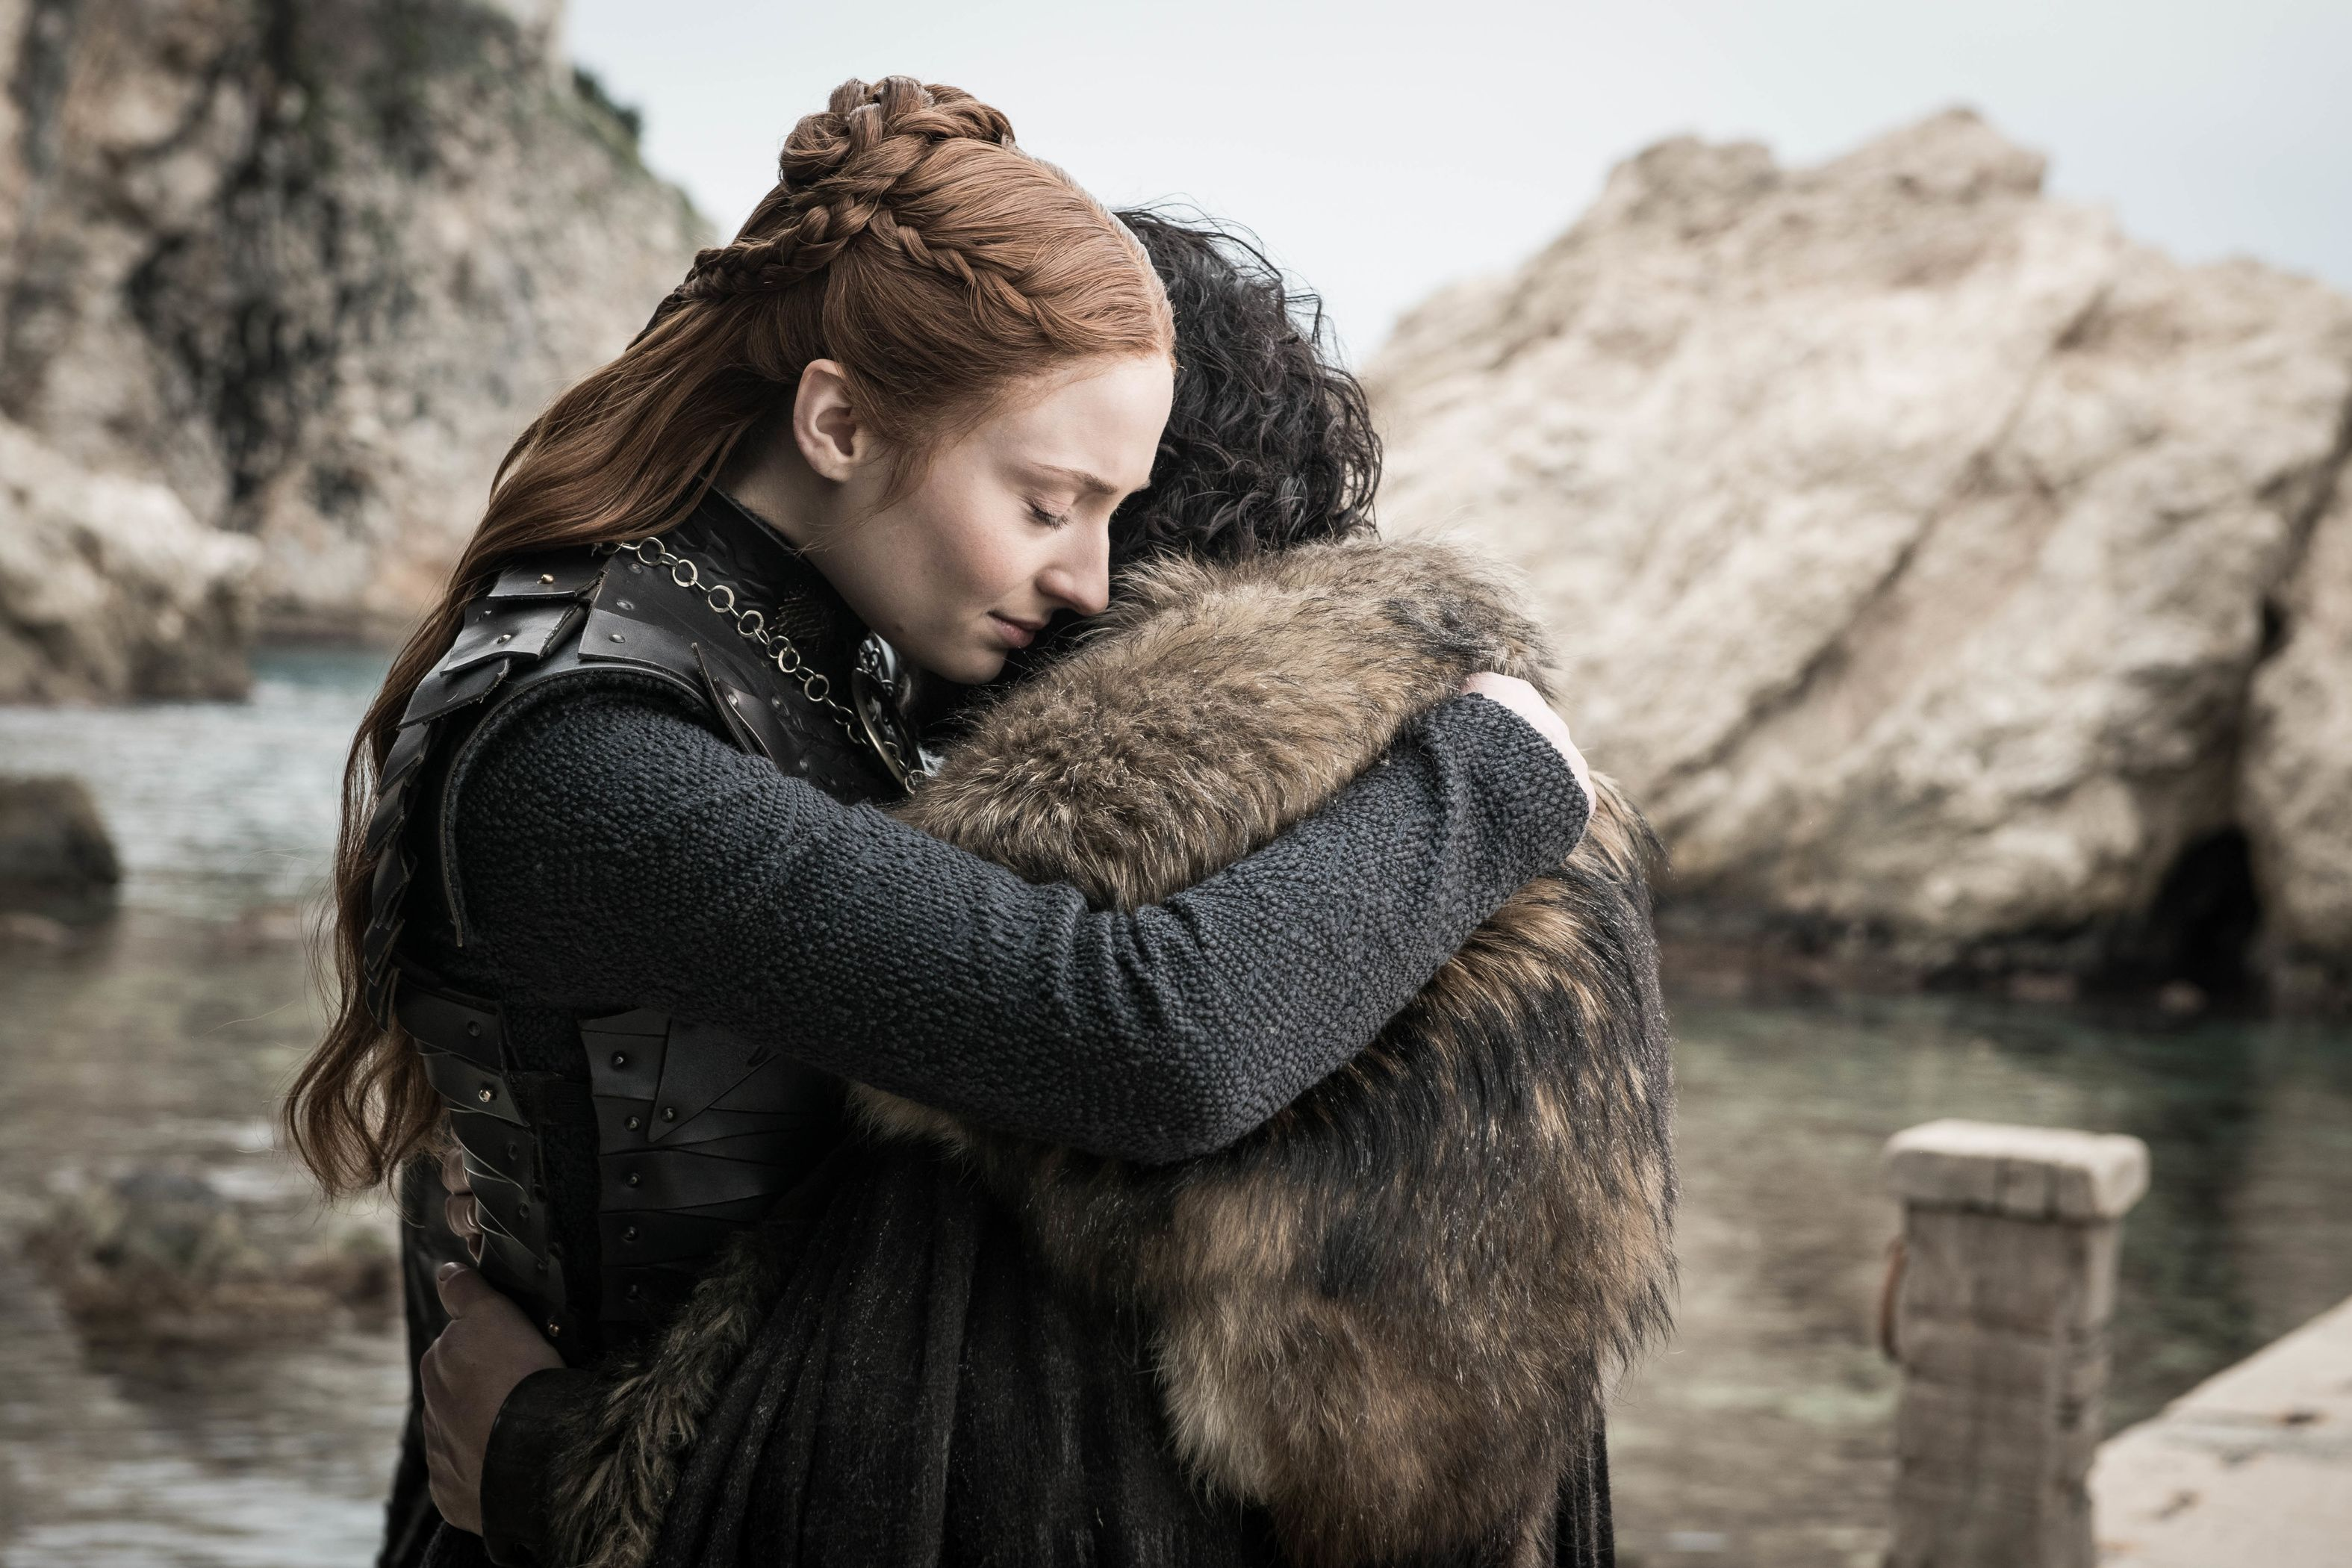 Sophie Turner's Tattoo Actually Spoiled the 'Game of Thrones' Ending a Year Ago